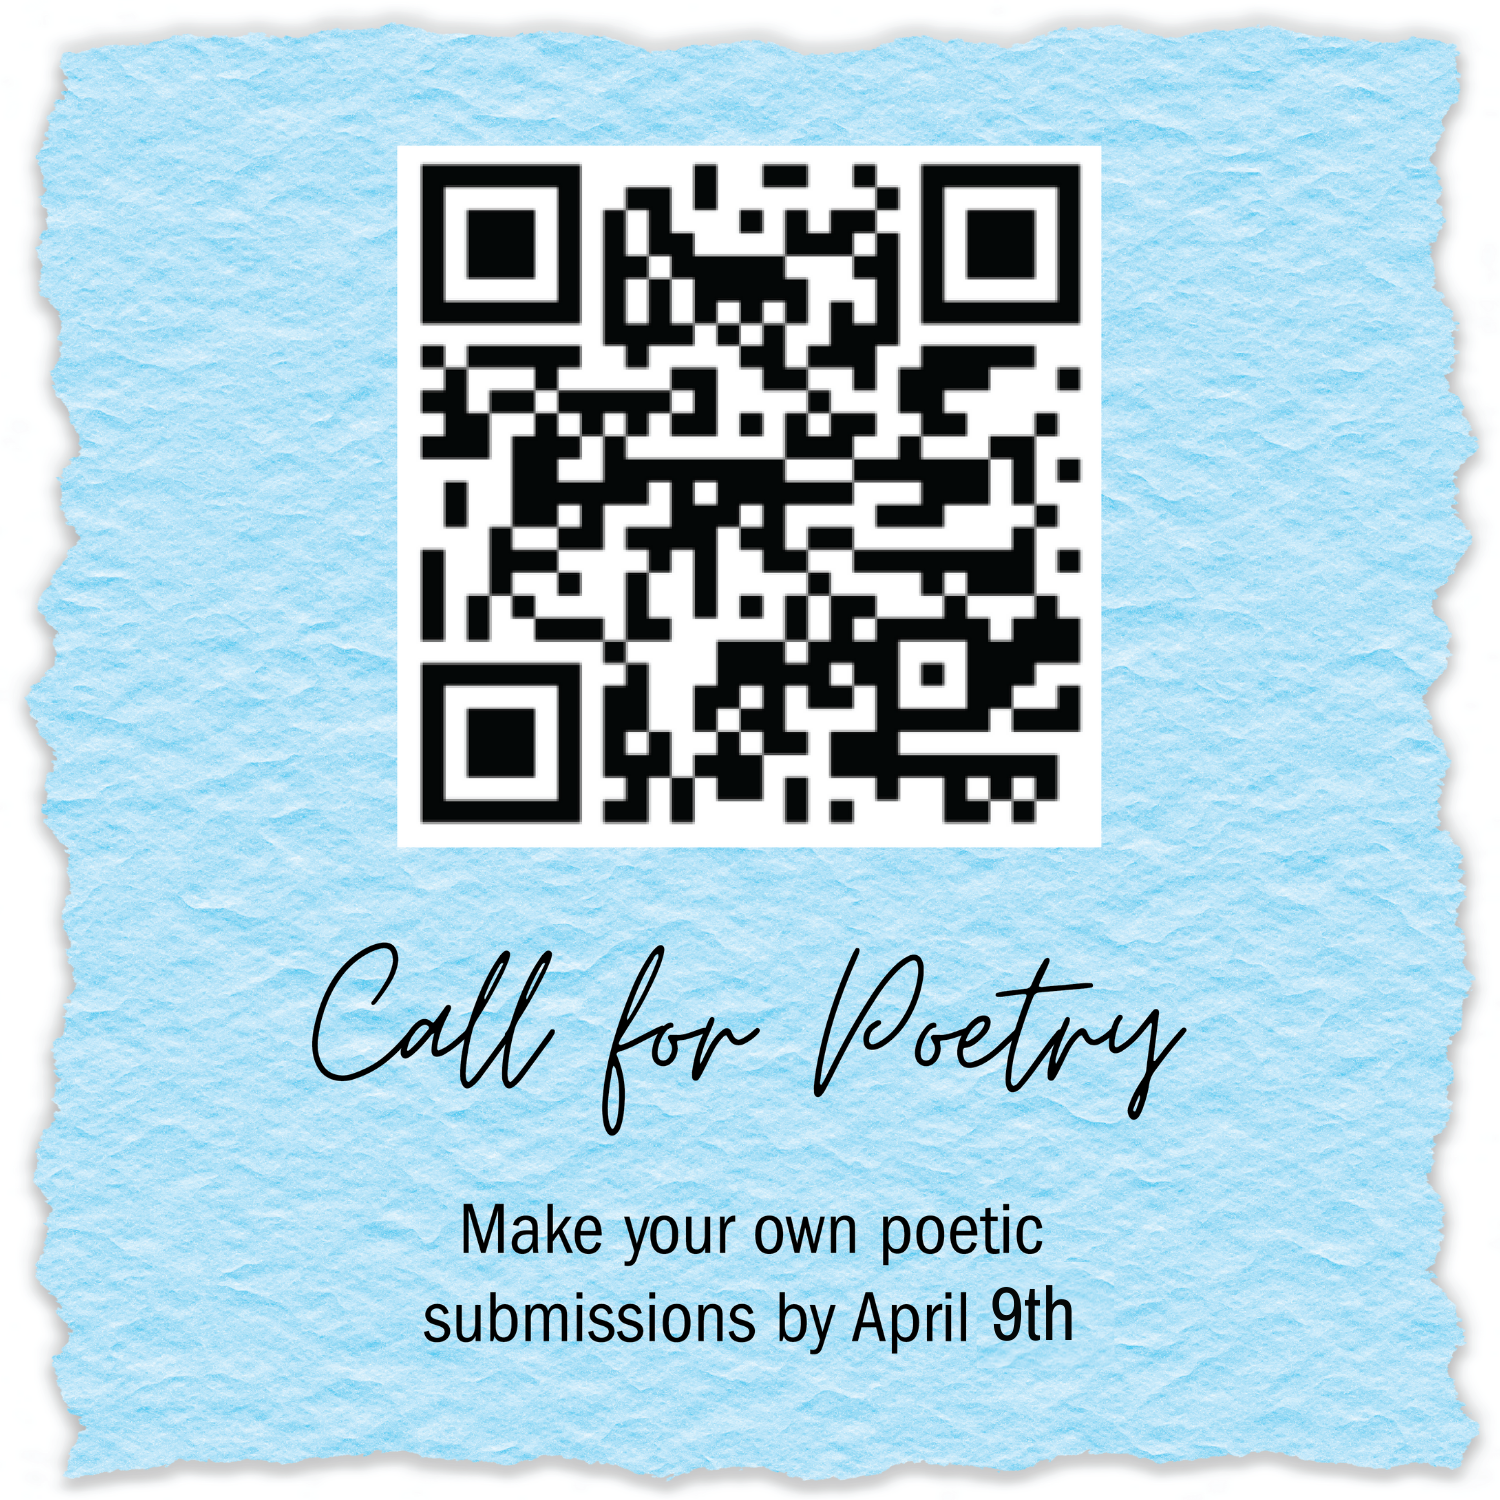 Call for Poetry - Extension!